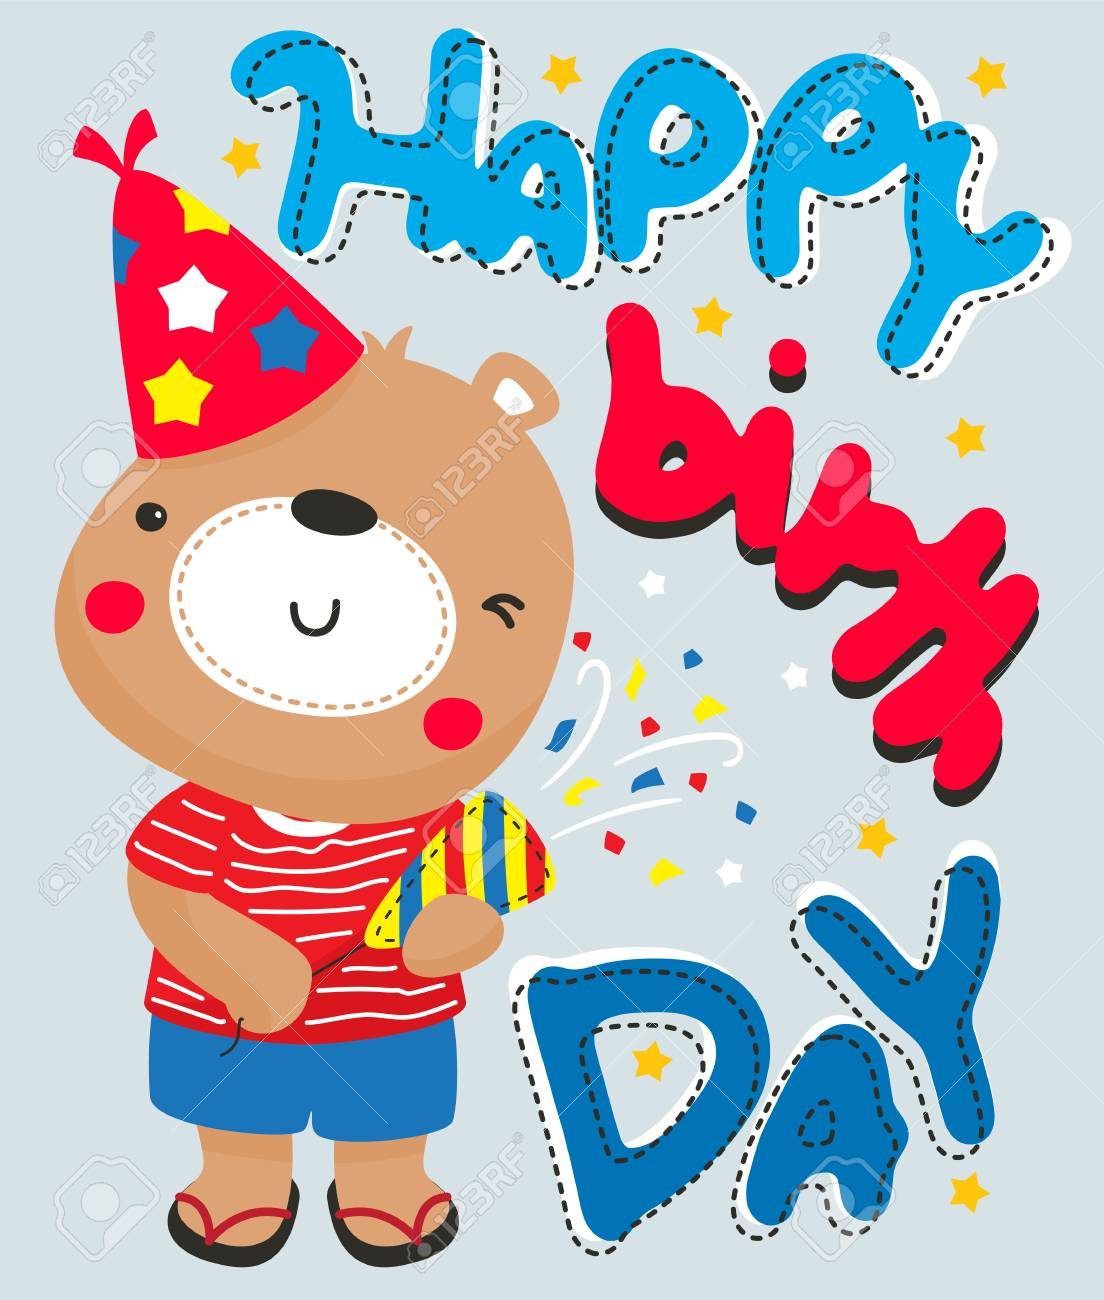 Cartoon Cute Teddy Bear Using Party Popper Happy Birthday Greeting Card For Illustration